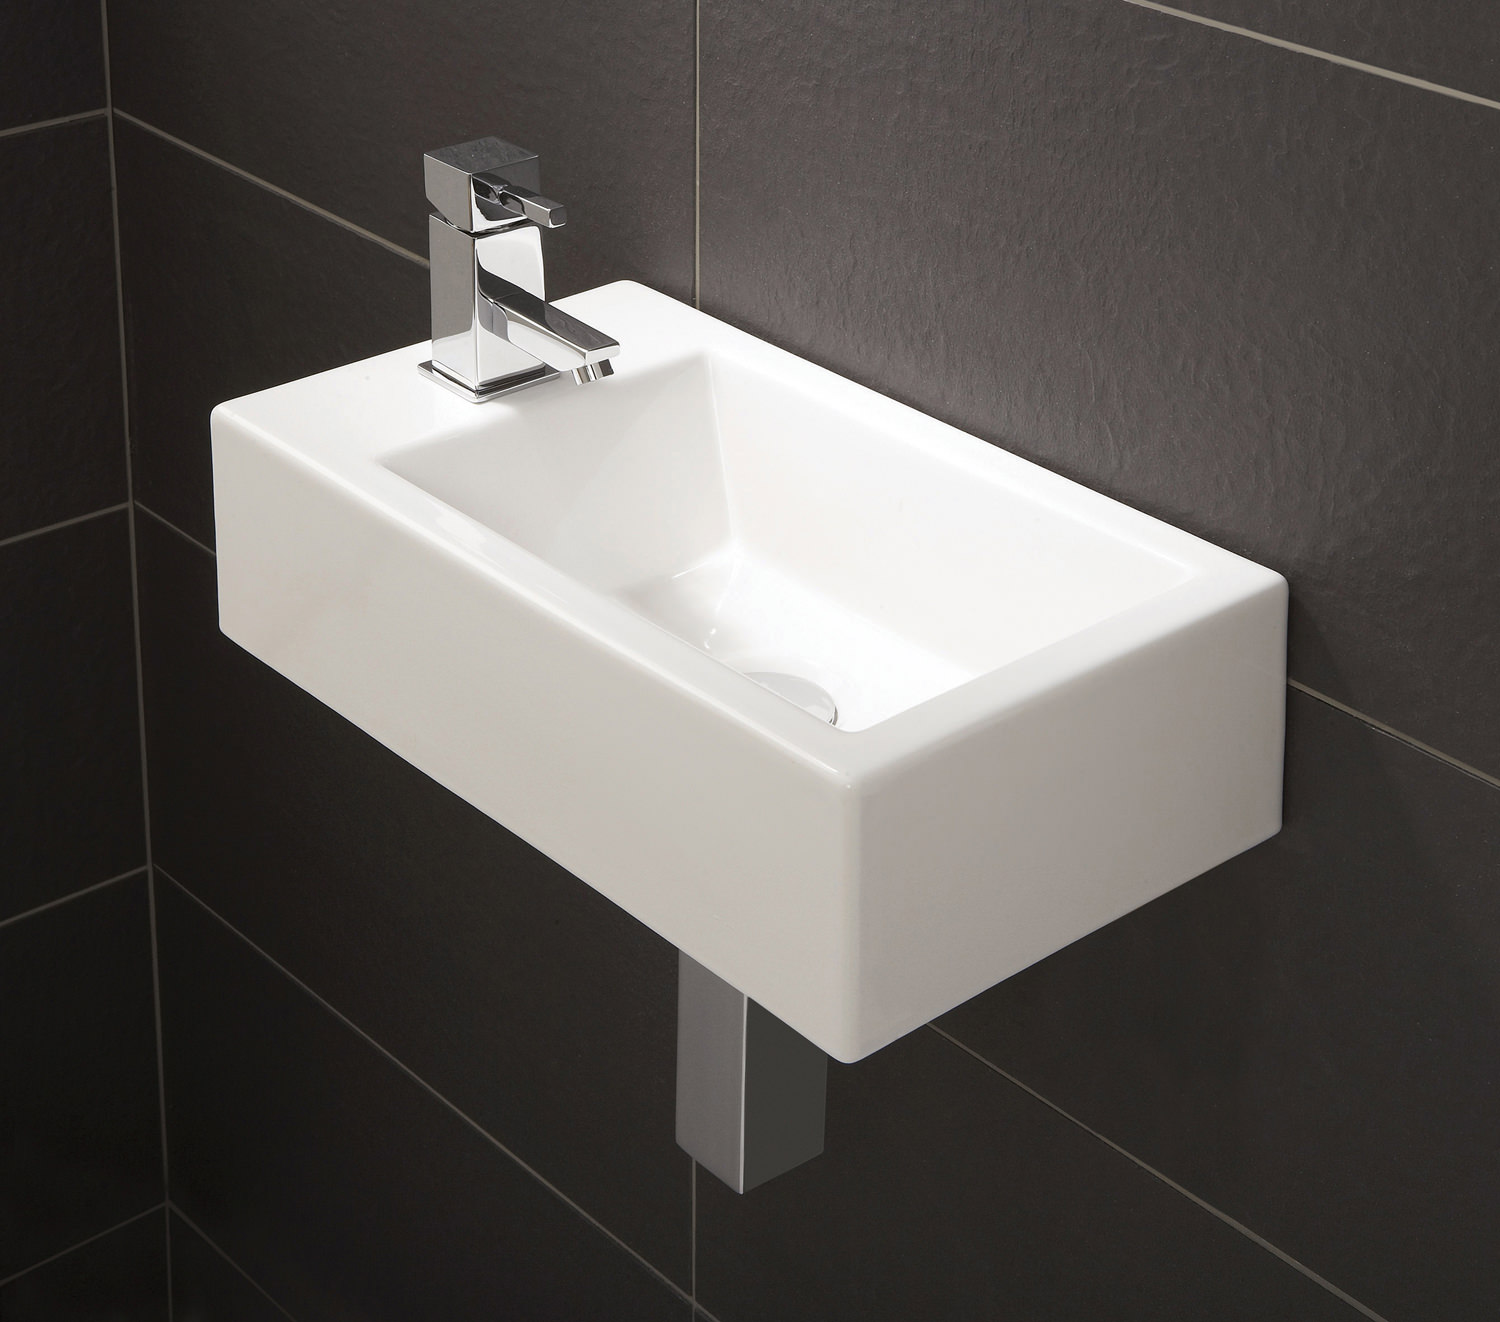 Bathroom Sink Design Ideas Hib Rialto Metro Cloakroom Basin 440 X 250mm 9770